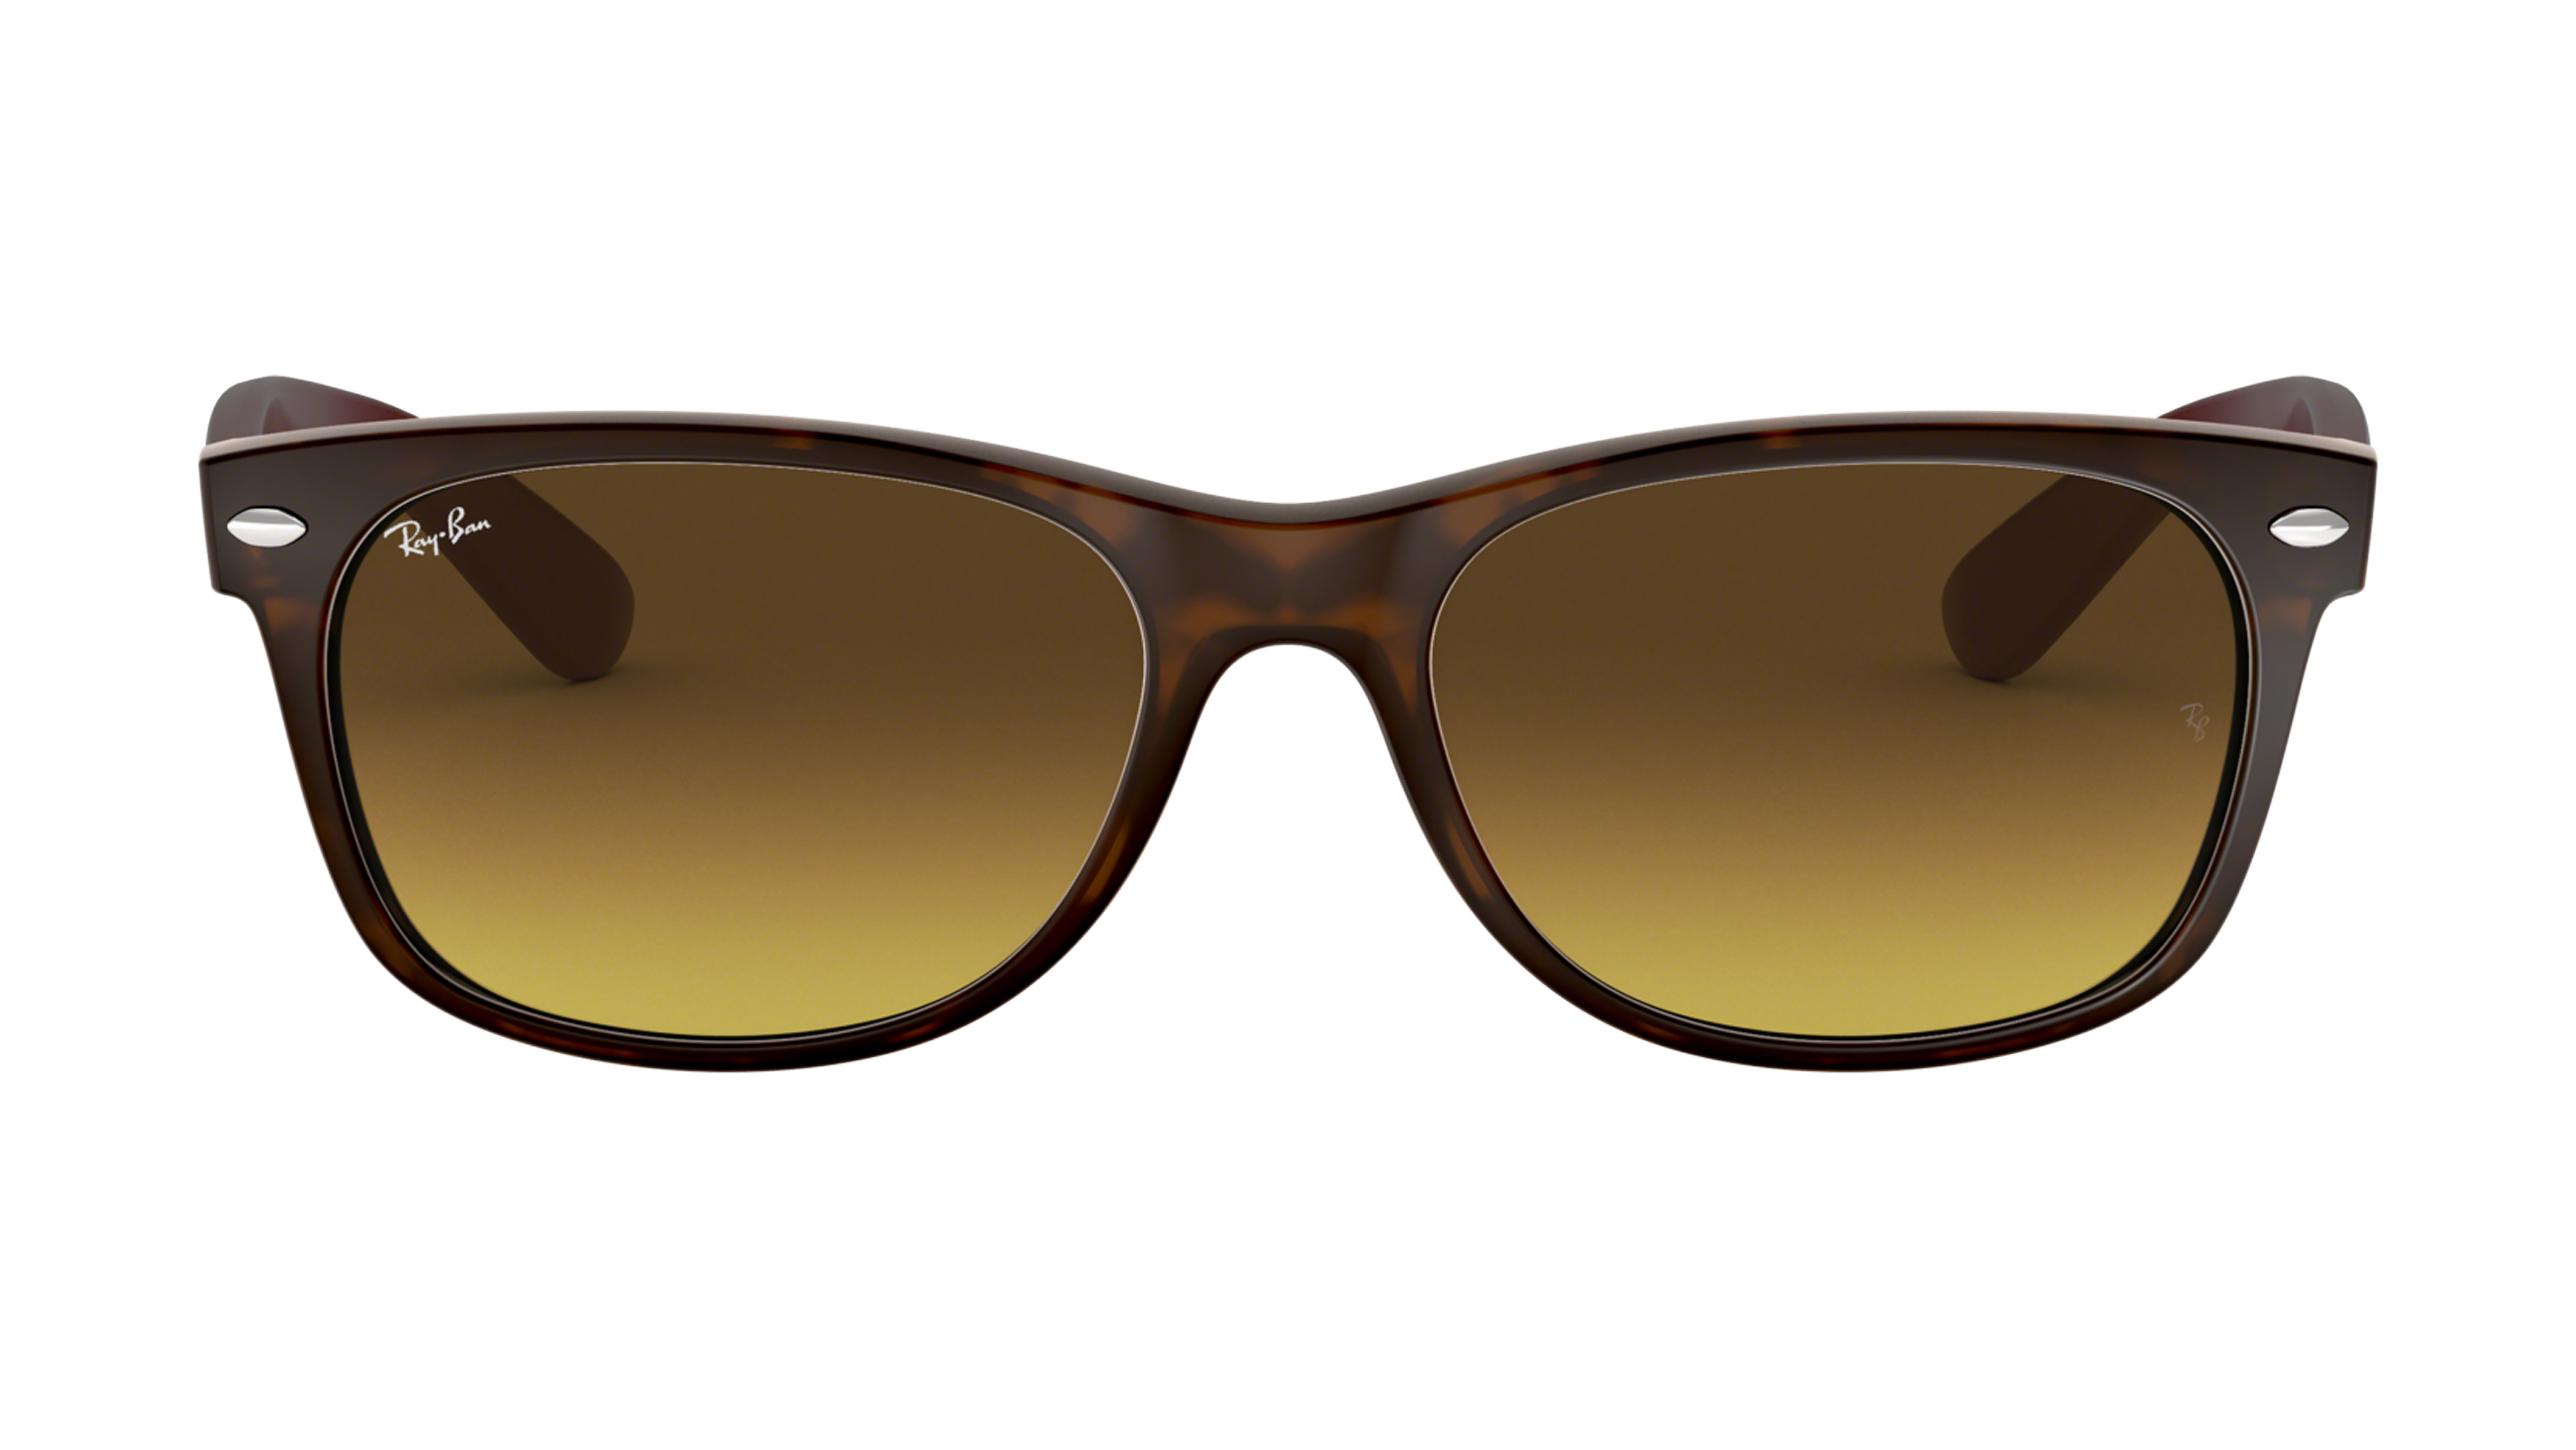 8053672399097-front-rayban_1